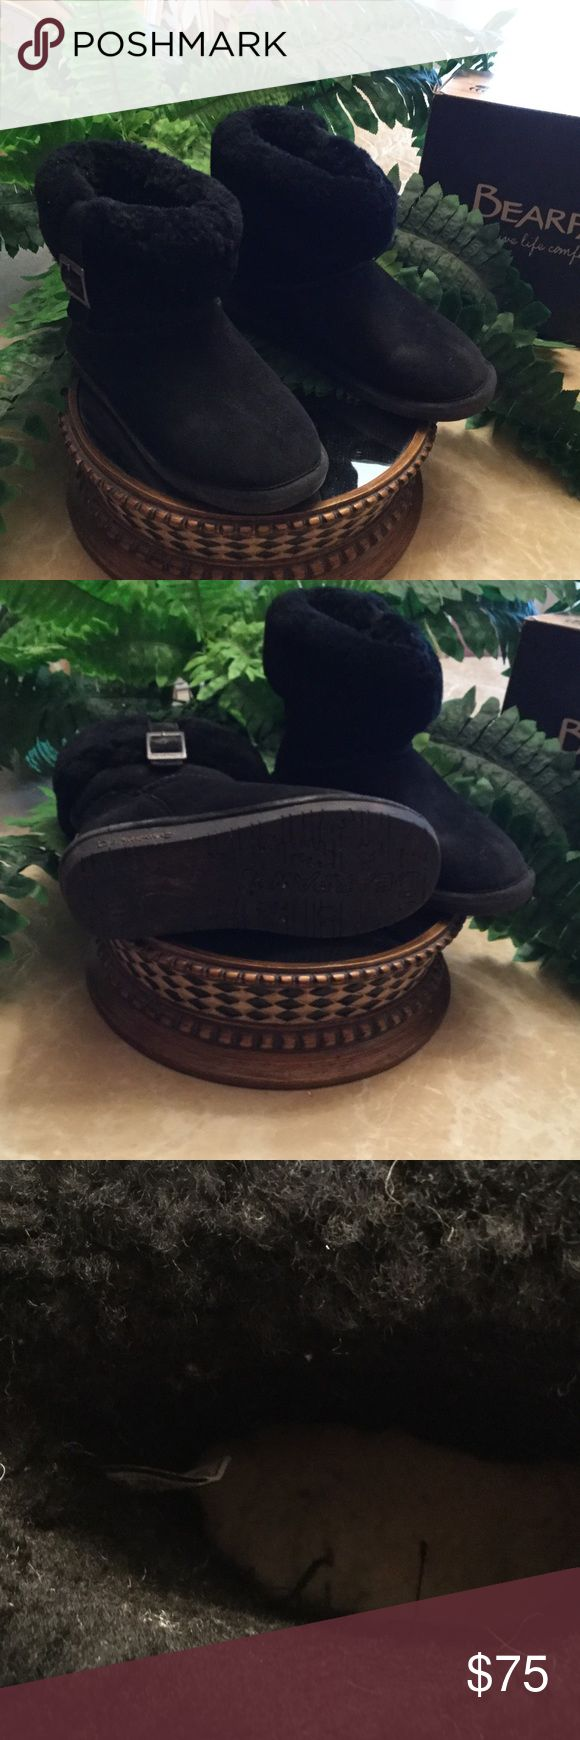 Bear paw black winter boots very good condition. Size 6 bear paw boots worn a few times only for dress. Very good condition, leather Shoes Ankle Boots & Booties